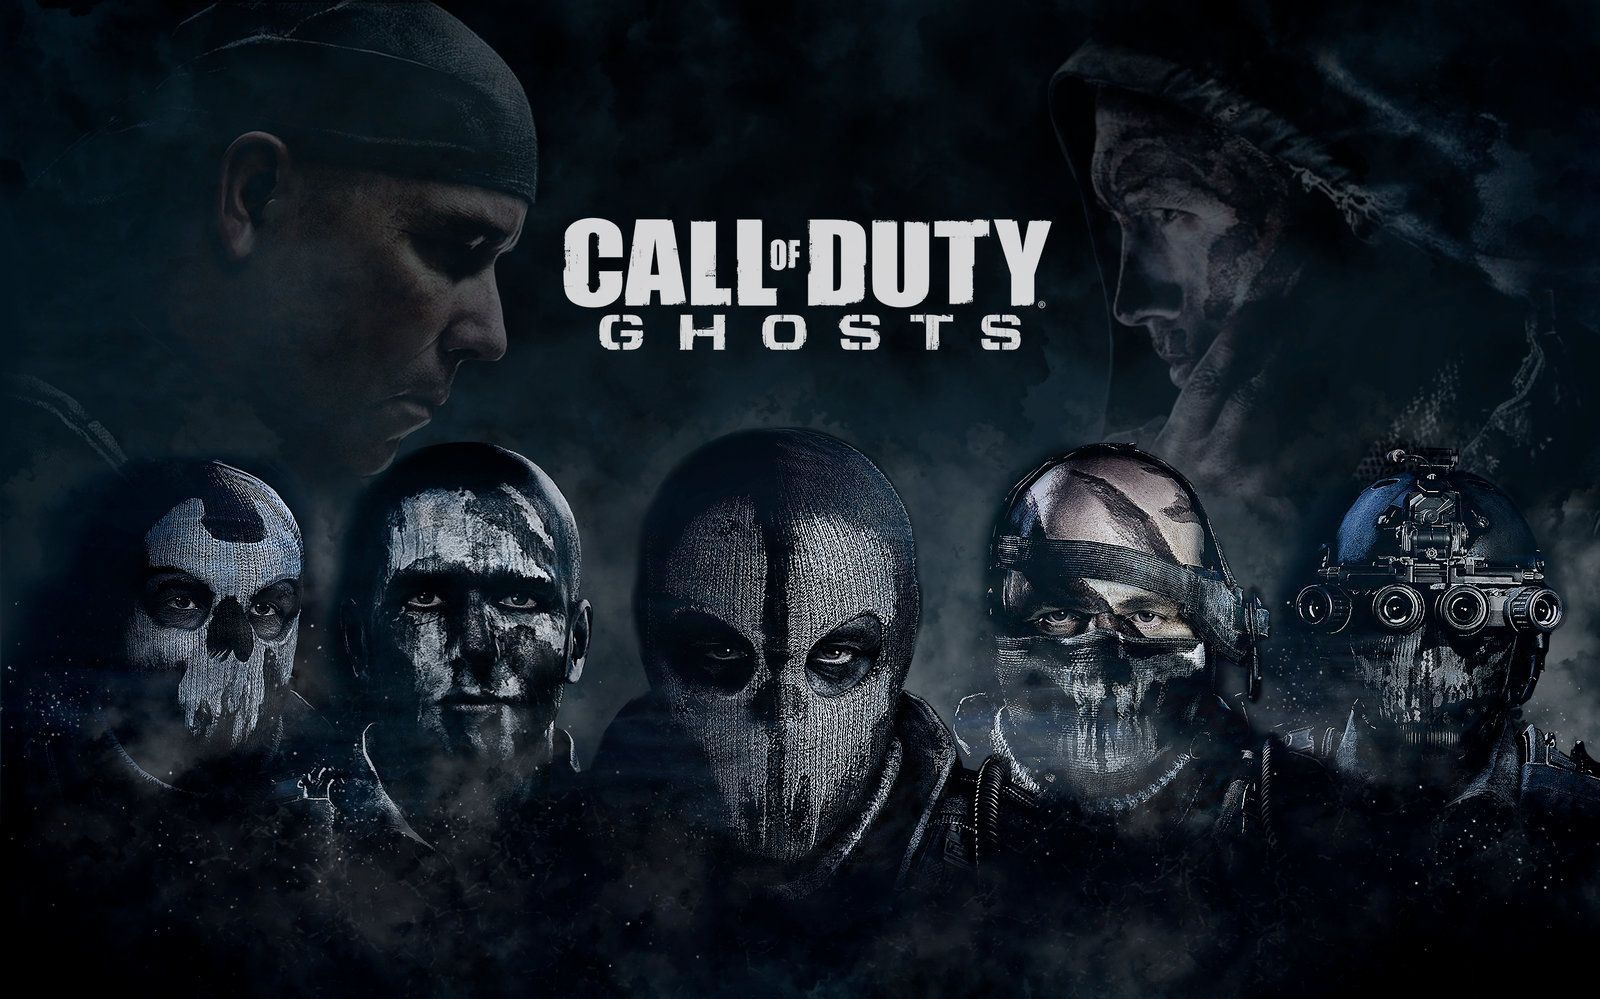 Call Of Duty Ghosts Game Wallpapers Hd Wallpapers With Images